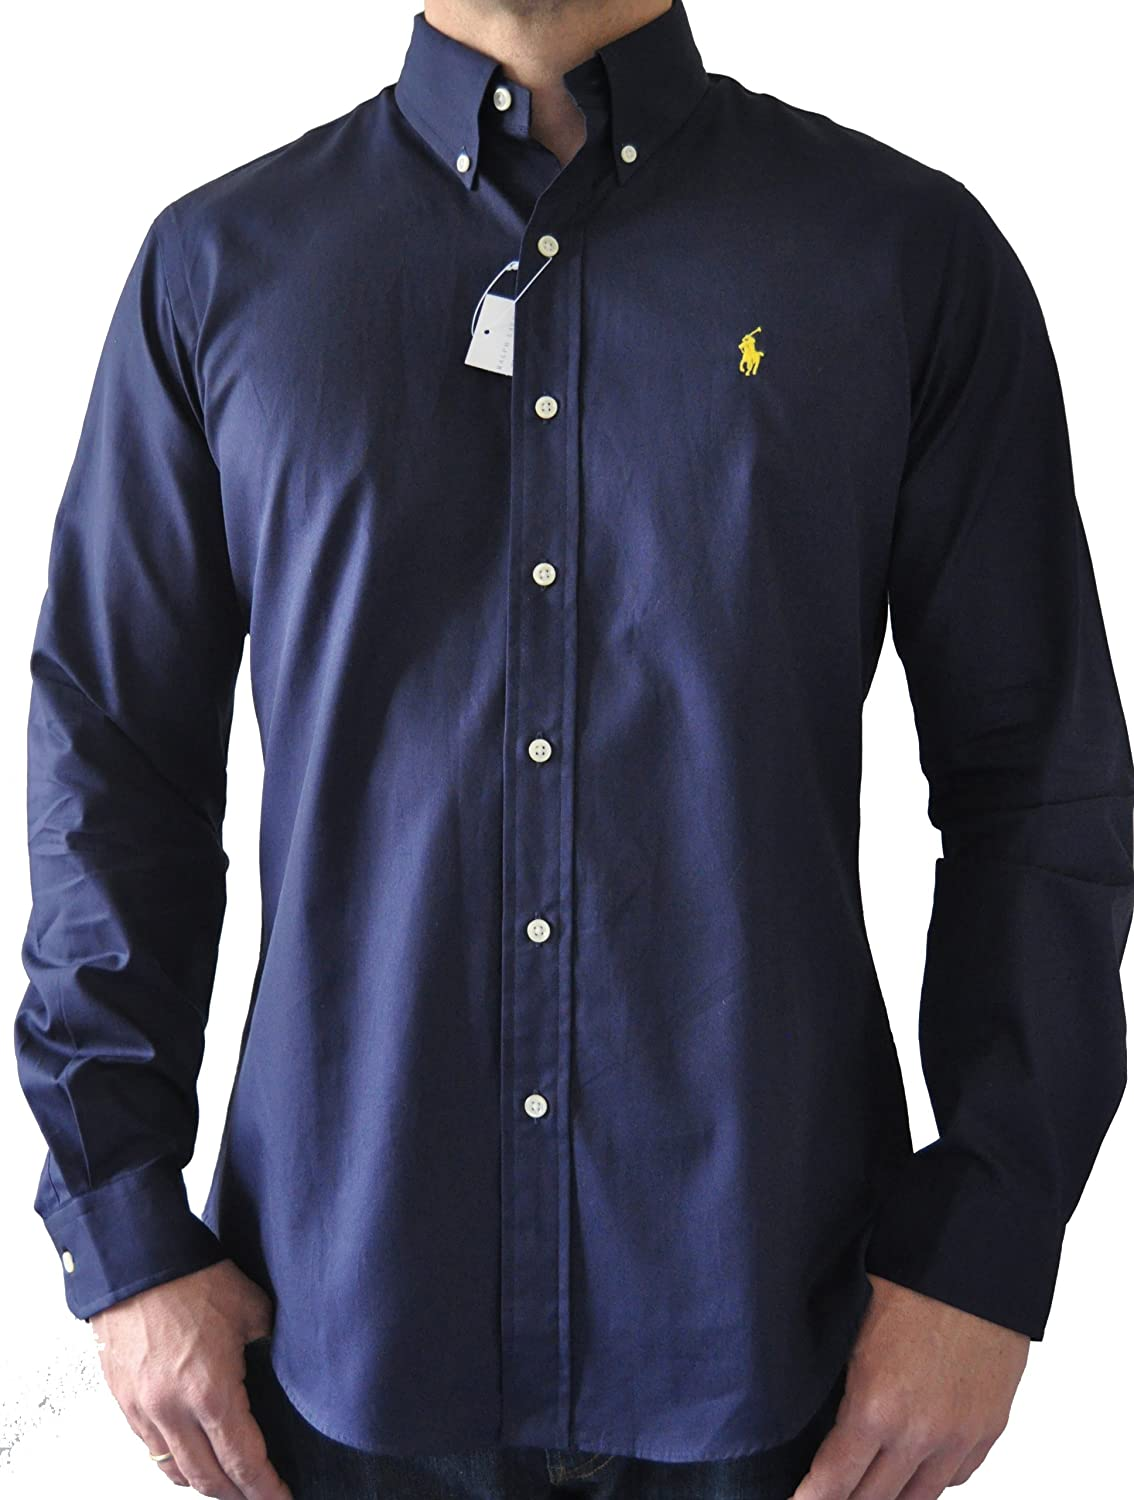 Lauren Ralph Lauren Dress Shirt Ralph Lauren Mens Dress Shirt